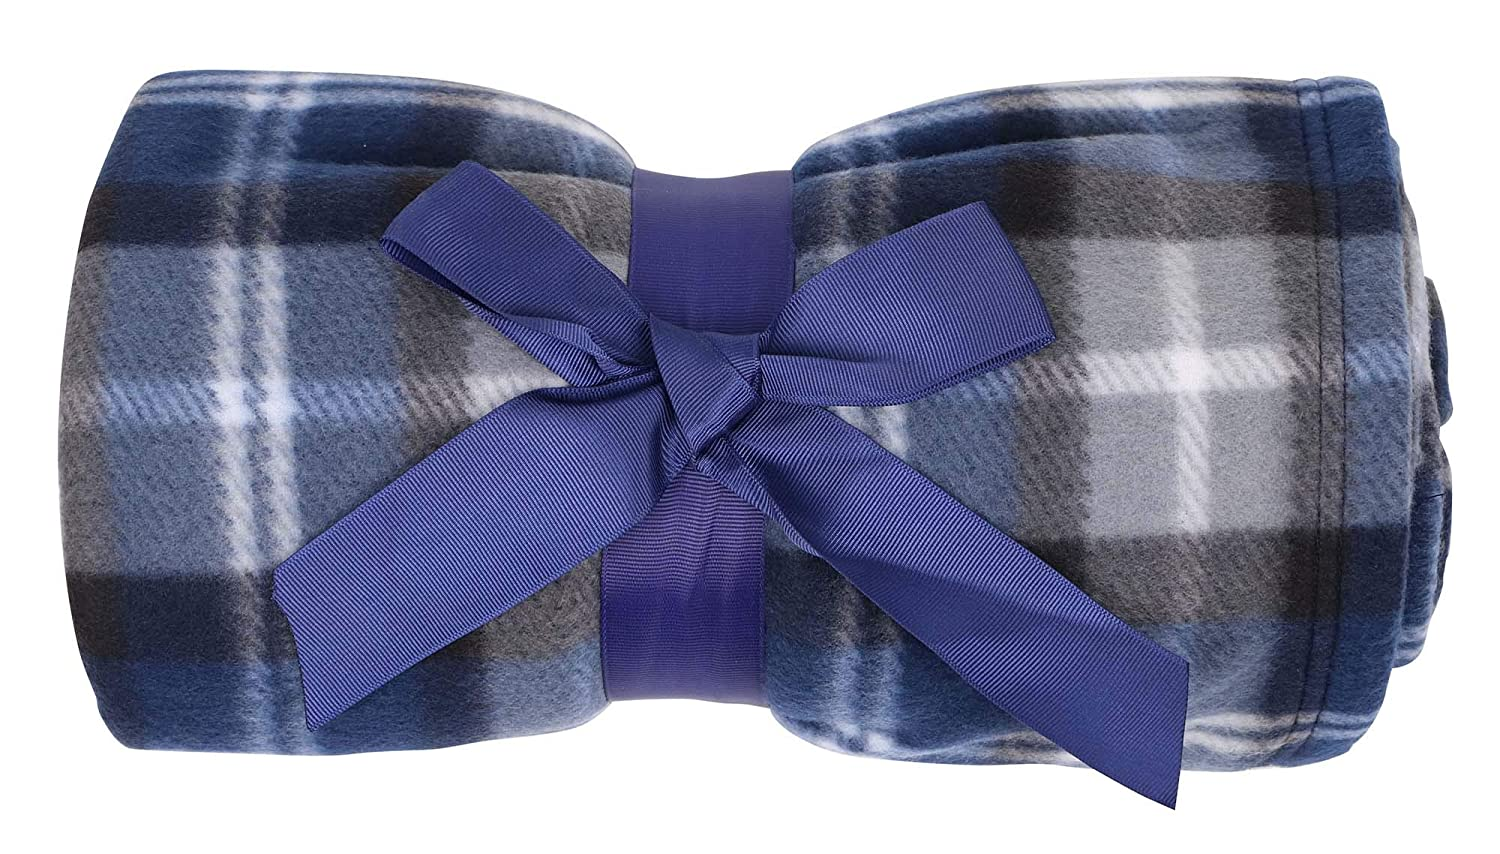 Navy Lullaby Plaid Patterned Soft Warm Polar Fleece Throw Blankets 50  x 60  Navy